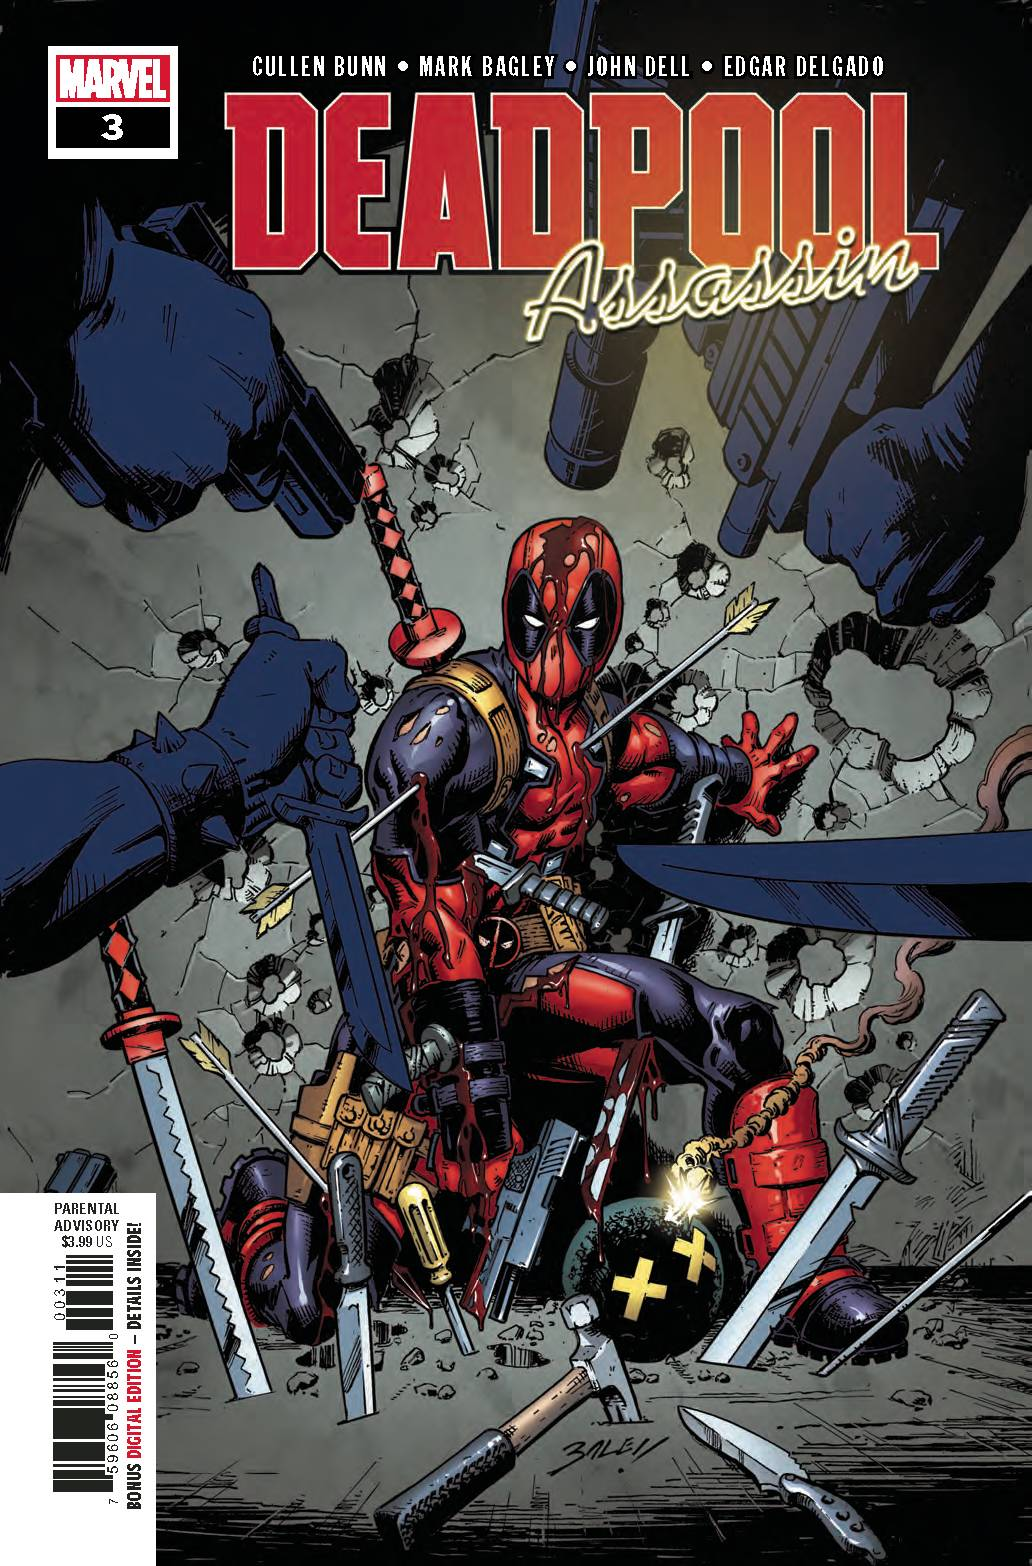 DEADPOOL ASSASSIN #3 (OF 6) (07/11/2018)